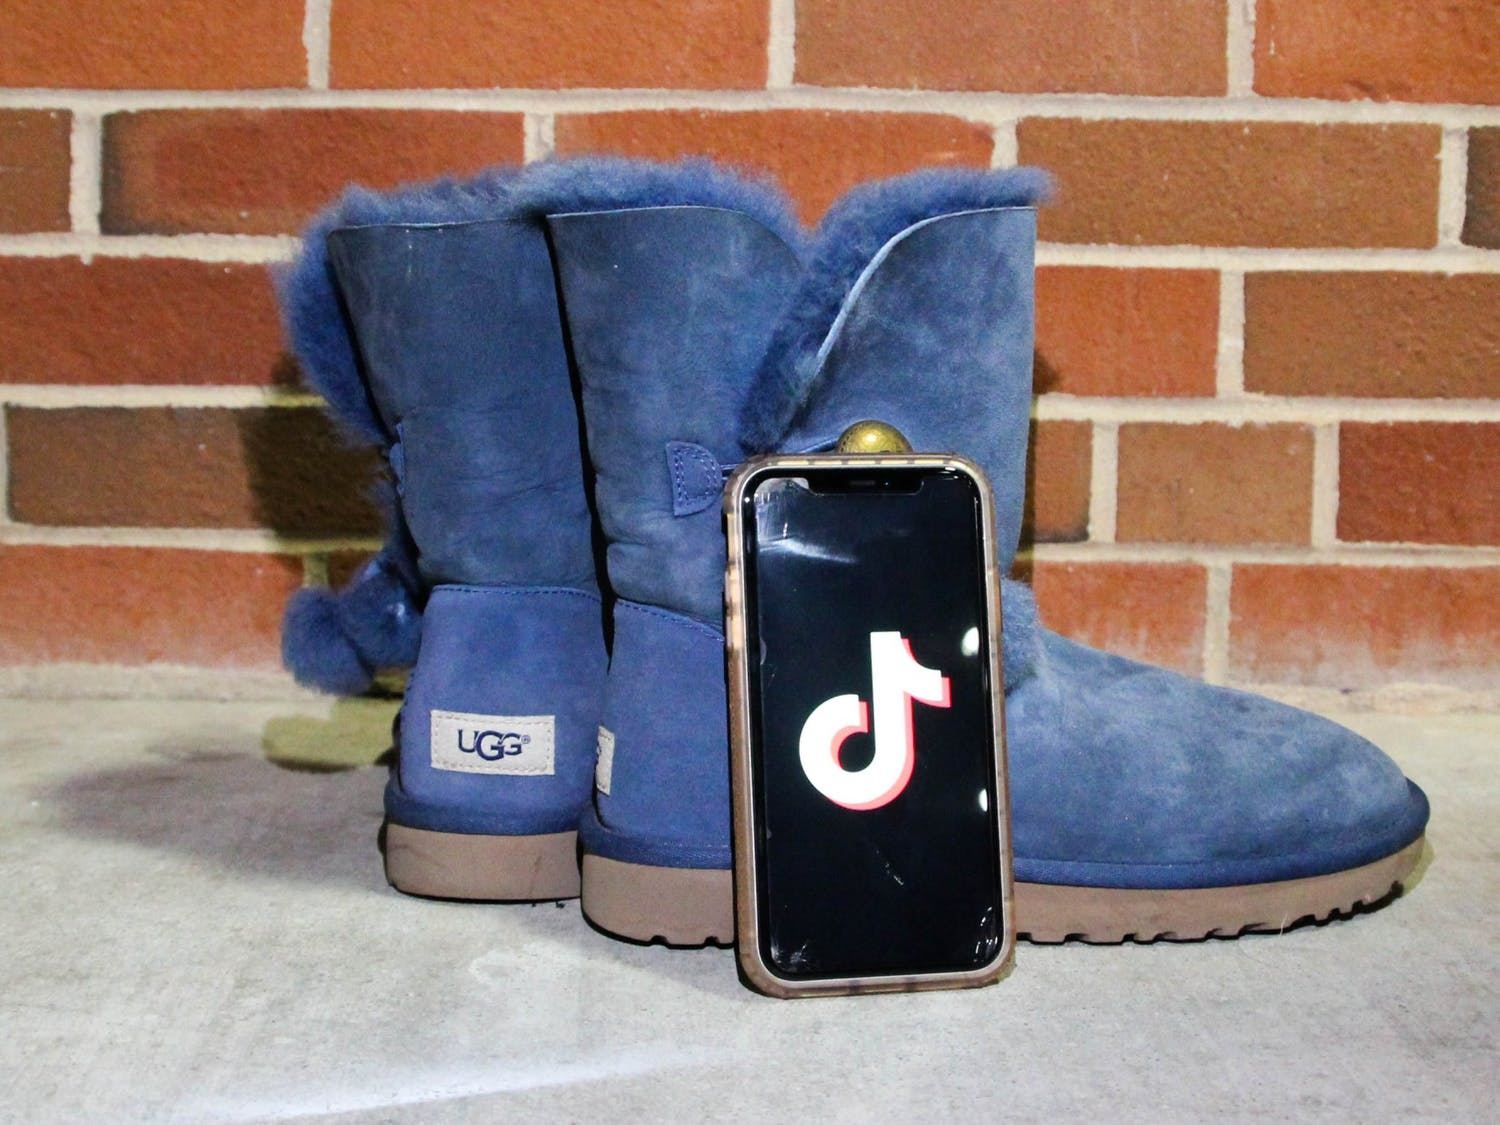 DTH Photo Illustration. Cheugy trends on TikTok, such as Ugg boots, are not very affordable.